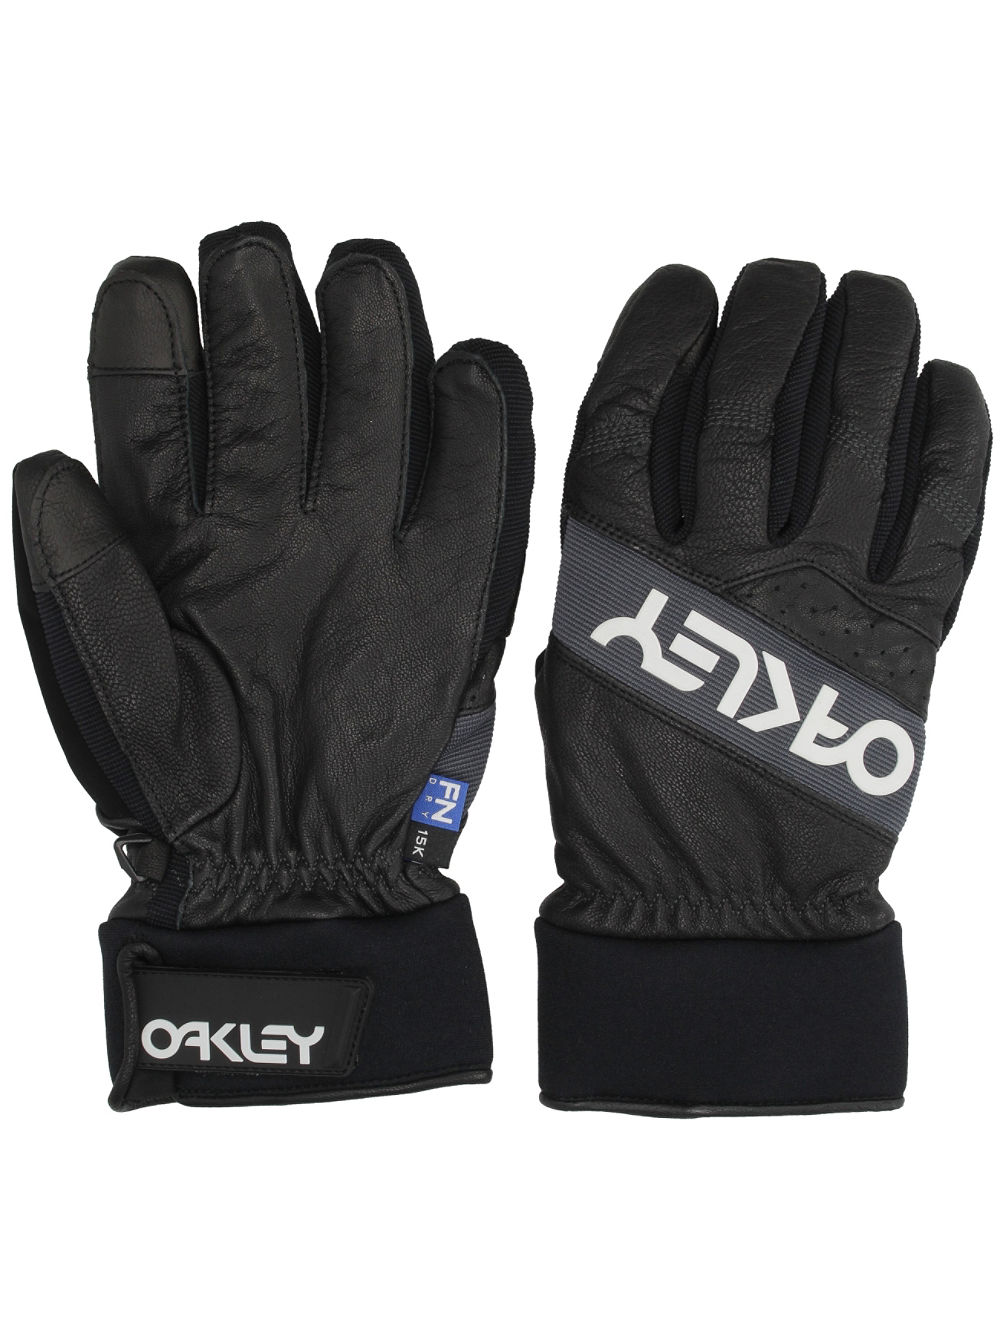 Factory Winter 2 Gloves